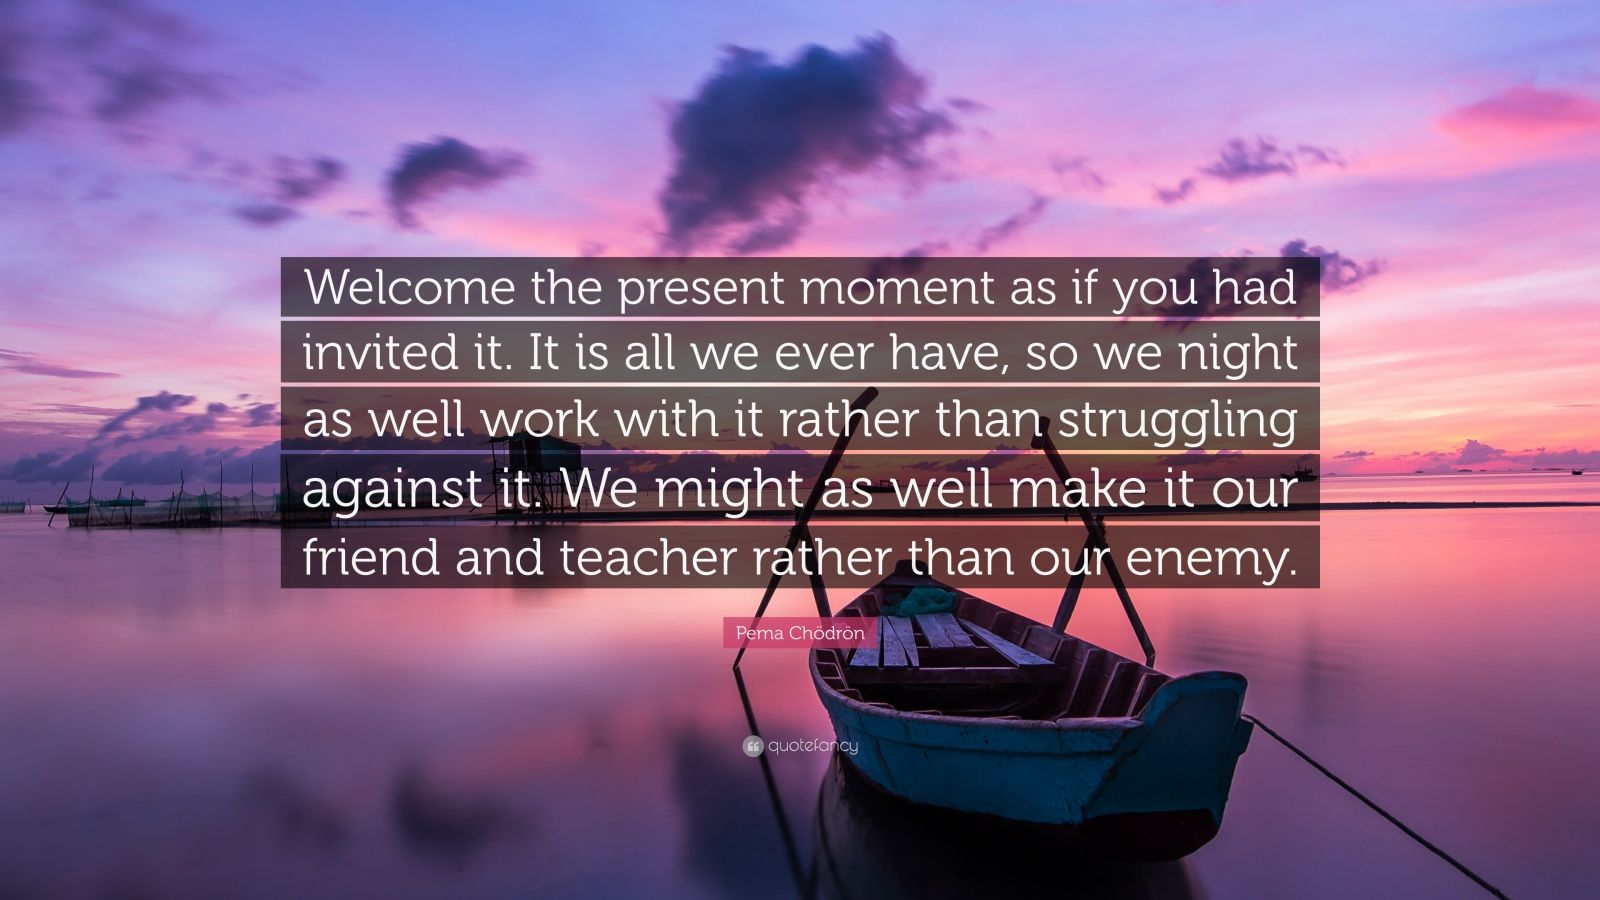 """Pema Chödrön Quote: """"Welcome the present moment as if you had invited it. It is all we ever have, so we night as well work with it rather than struggling against it. We might as well make it our friend and teacher rather than our enemy."""""""